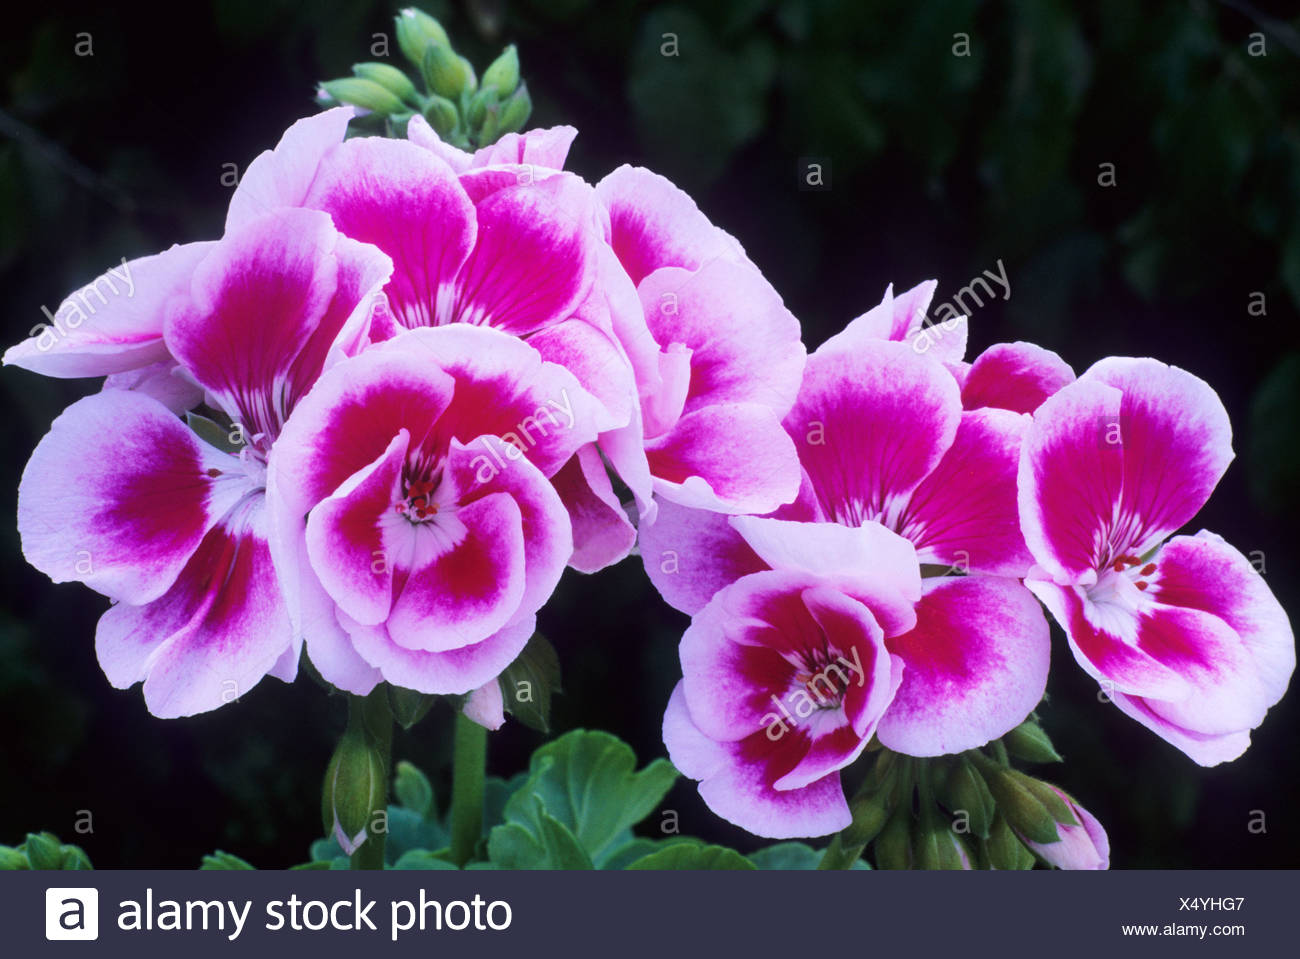 Pelargonium Flower Fairy White Splash Pink And White Flower